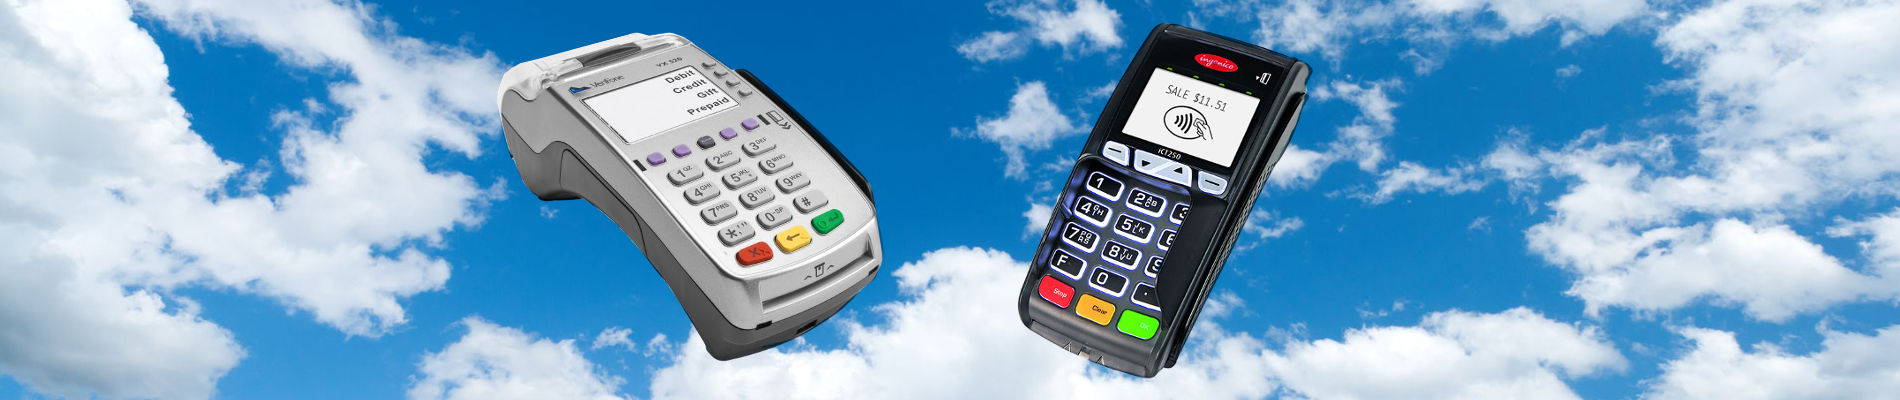 Choosing the Right Credit Card Machine for Your Small Business